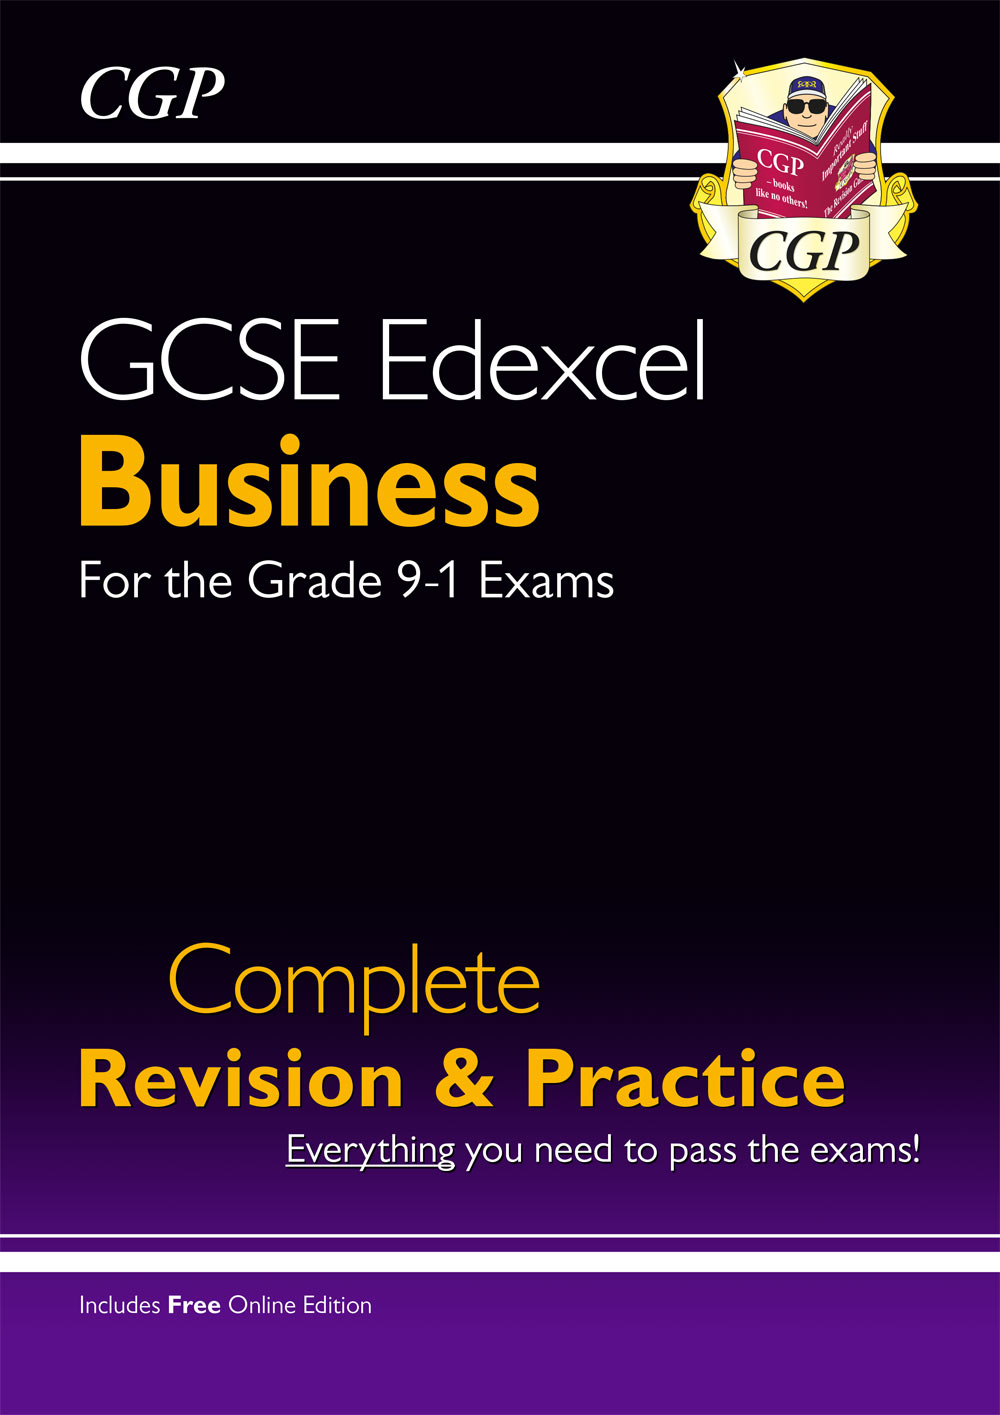 BUES41 - New GCSE Business Edexcel Complete Revision and Practice - Grade 9-1 Course (with Online Ed